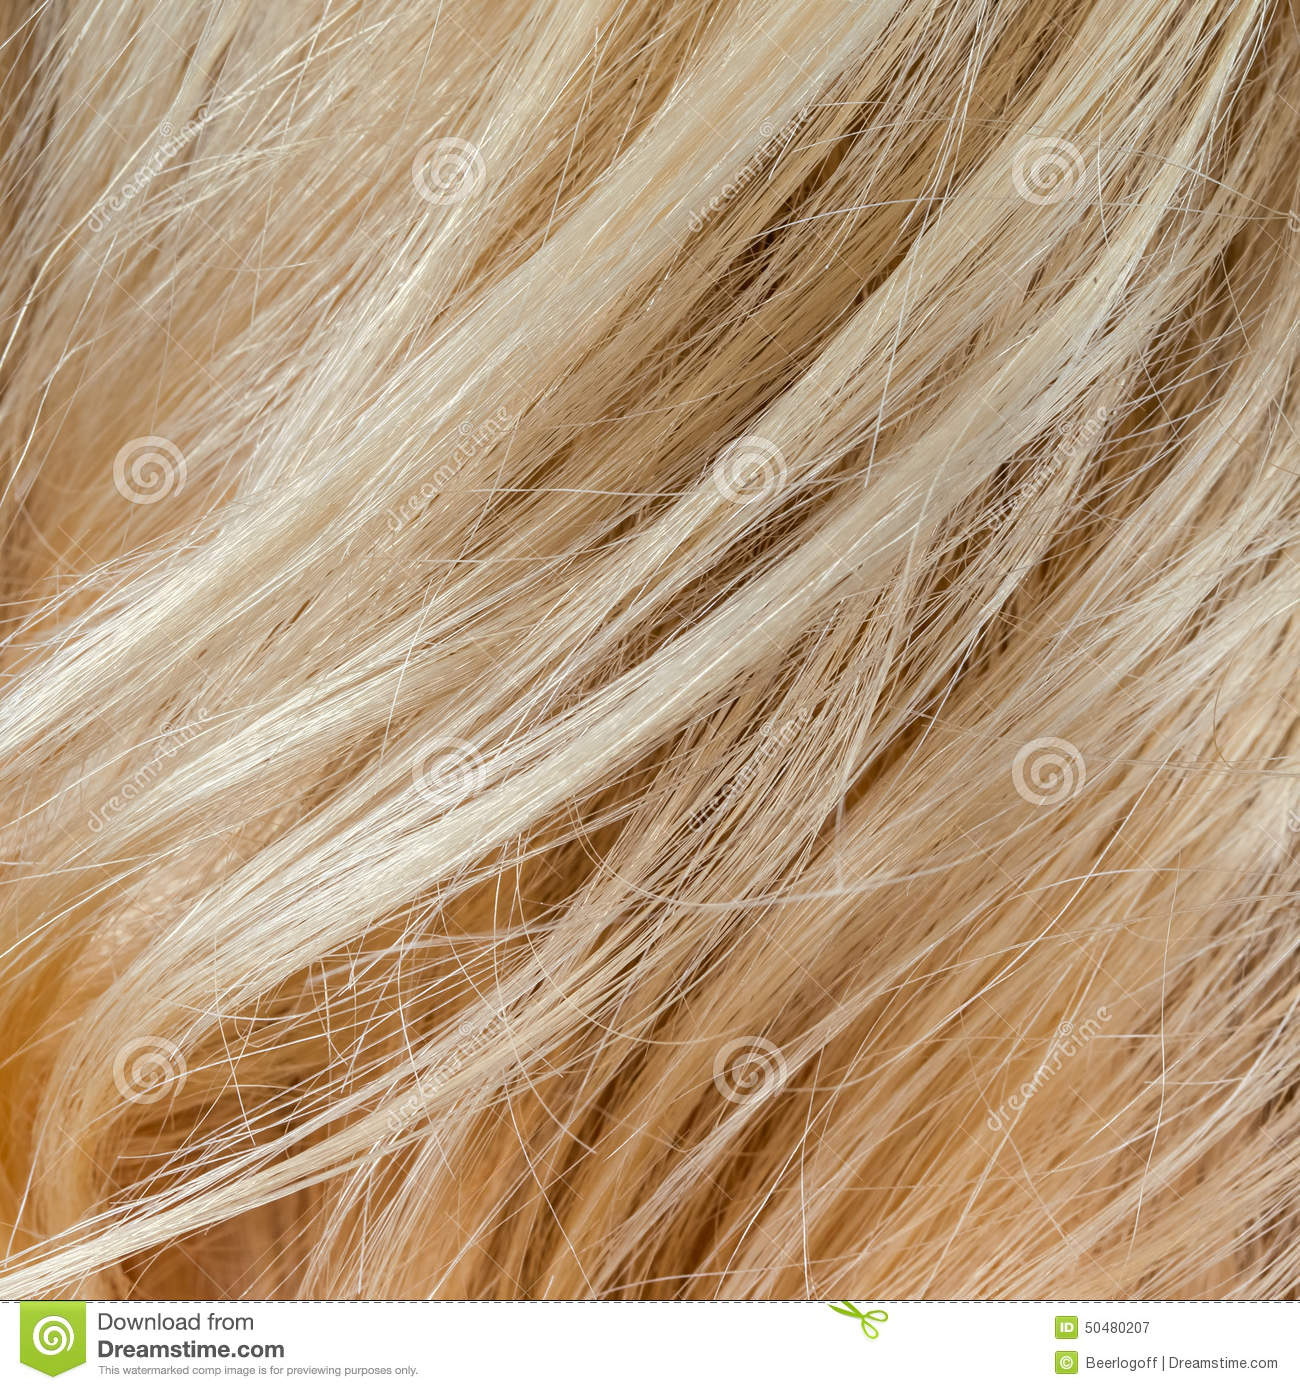 wavy blonde woman hair background and texture stock image